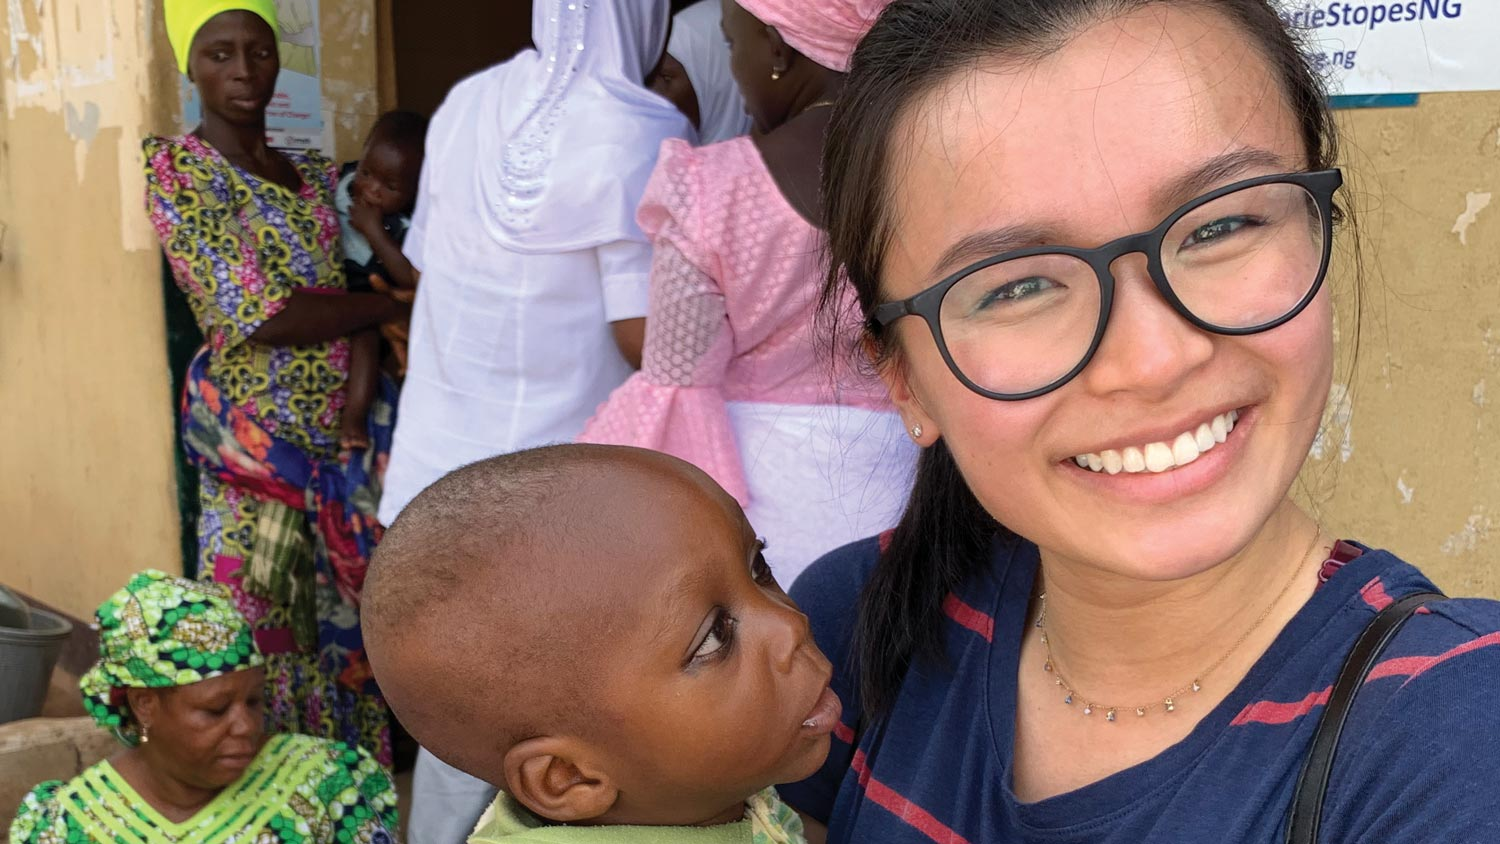 Janice Fung holds an infant outside of a health clinic in Nigeria.